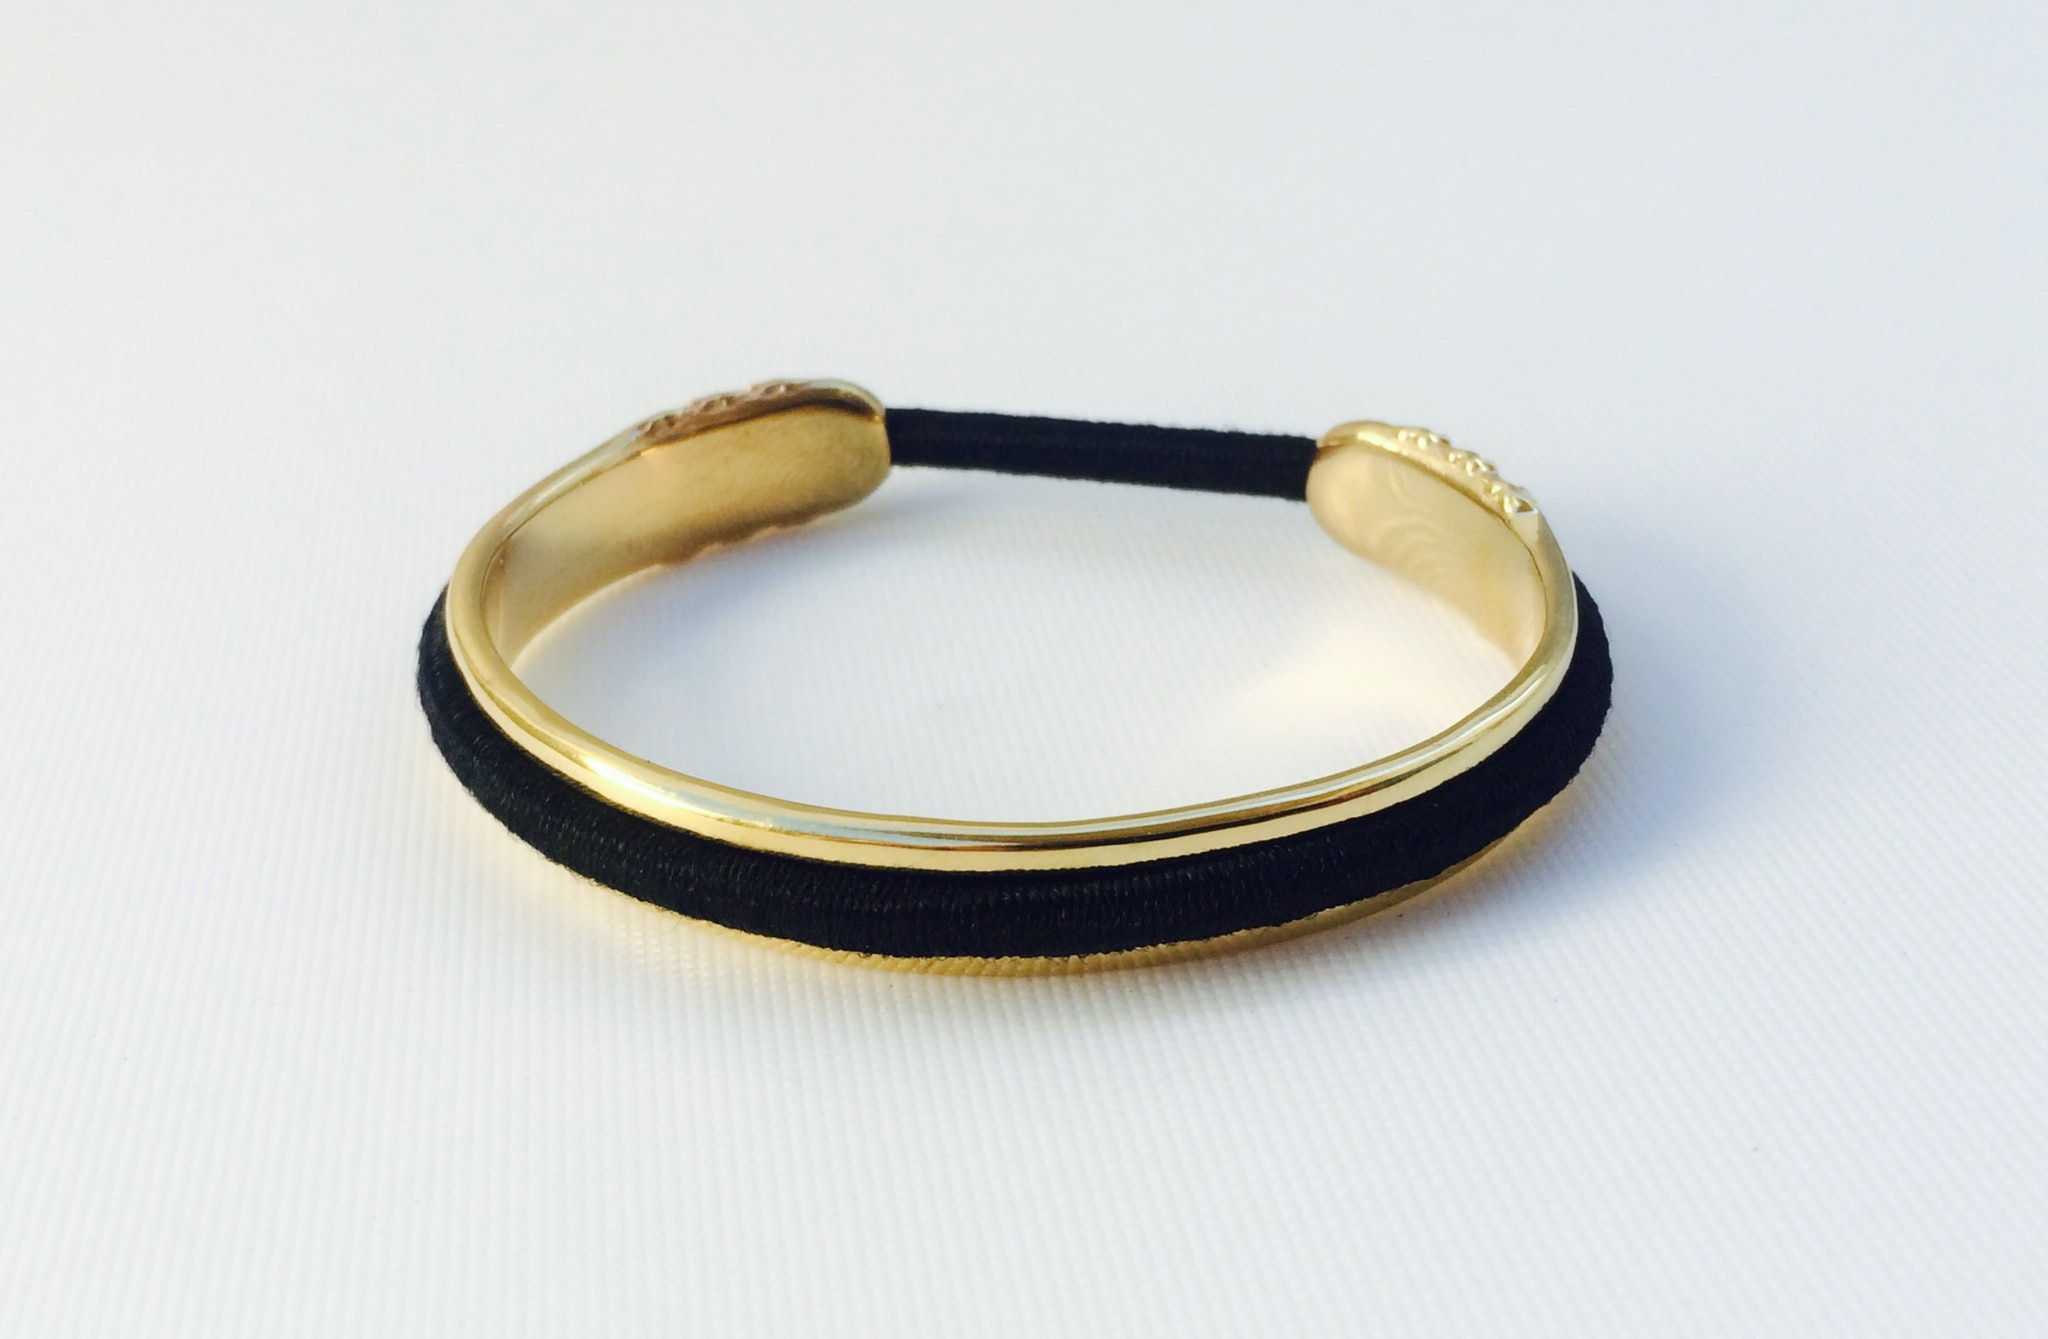 BitterSweet Jewelry s Bracelet Has A Built-In Hair Tie Holder And It s  Going To Change Your Life Forever df8e72601e5